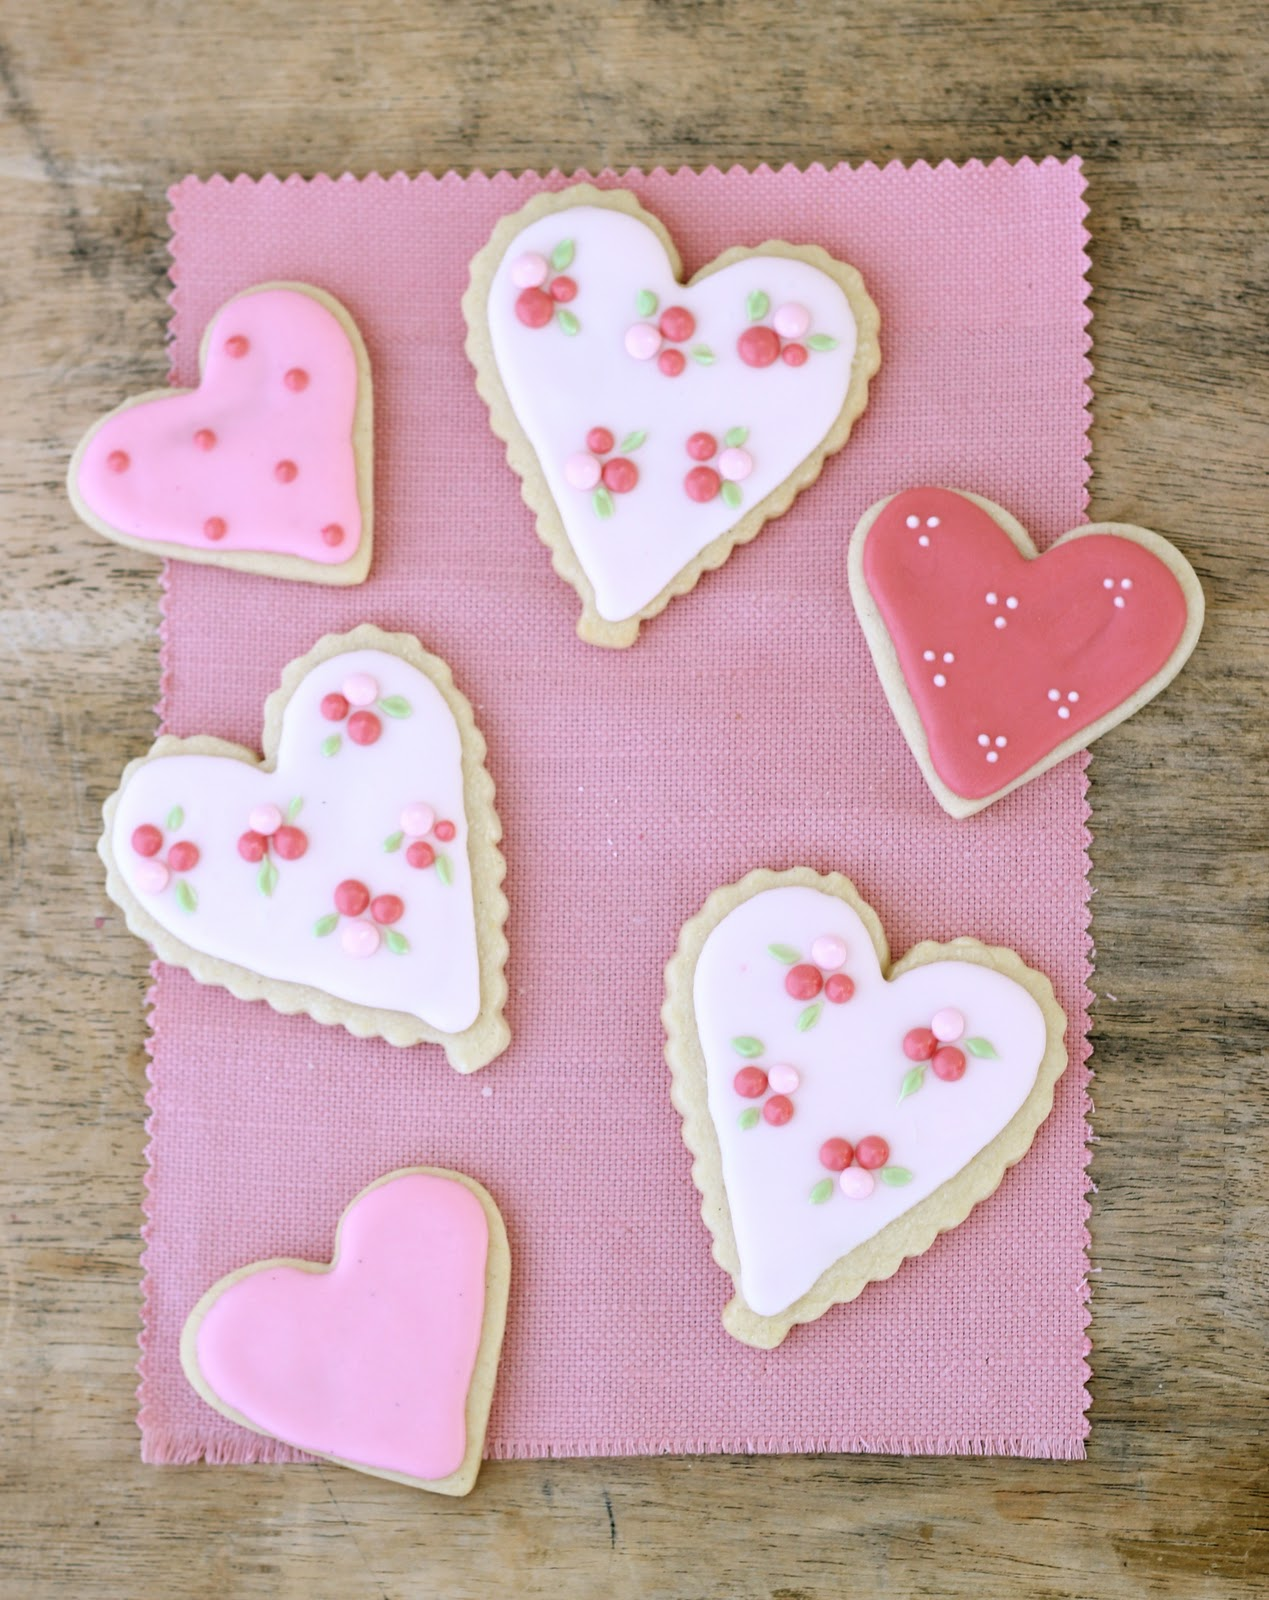 Jenny Steffens Hobick Valentine S Day Sugar Cookies Heart Cookies